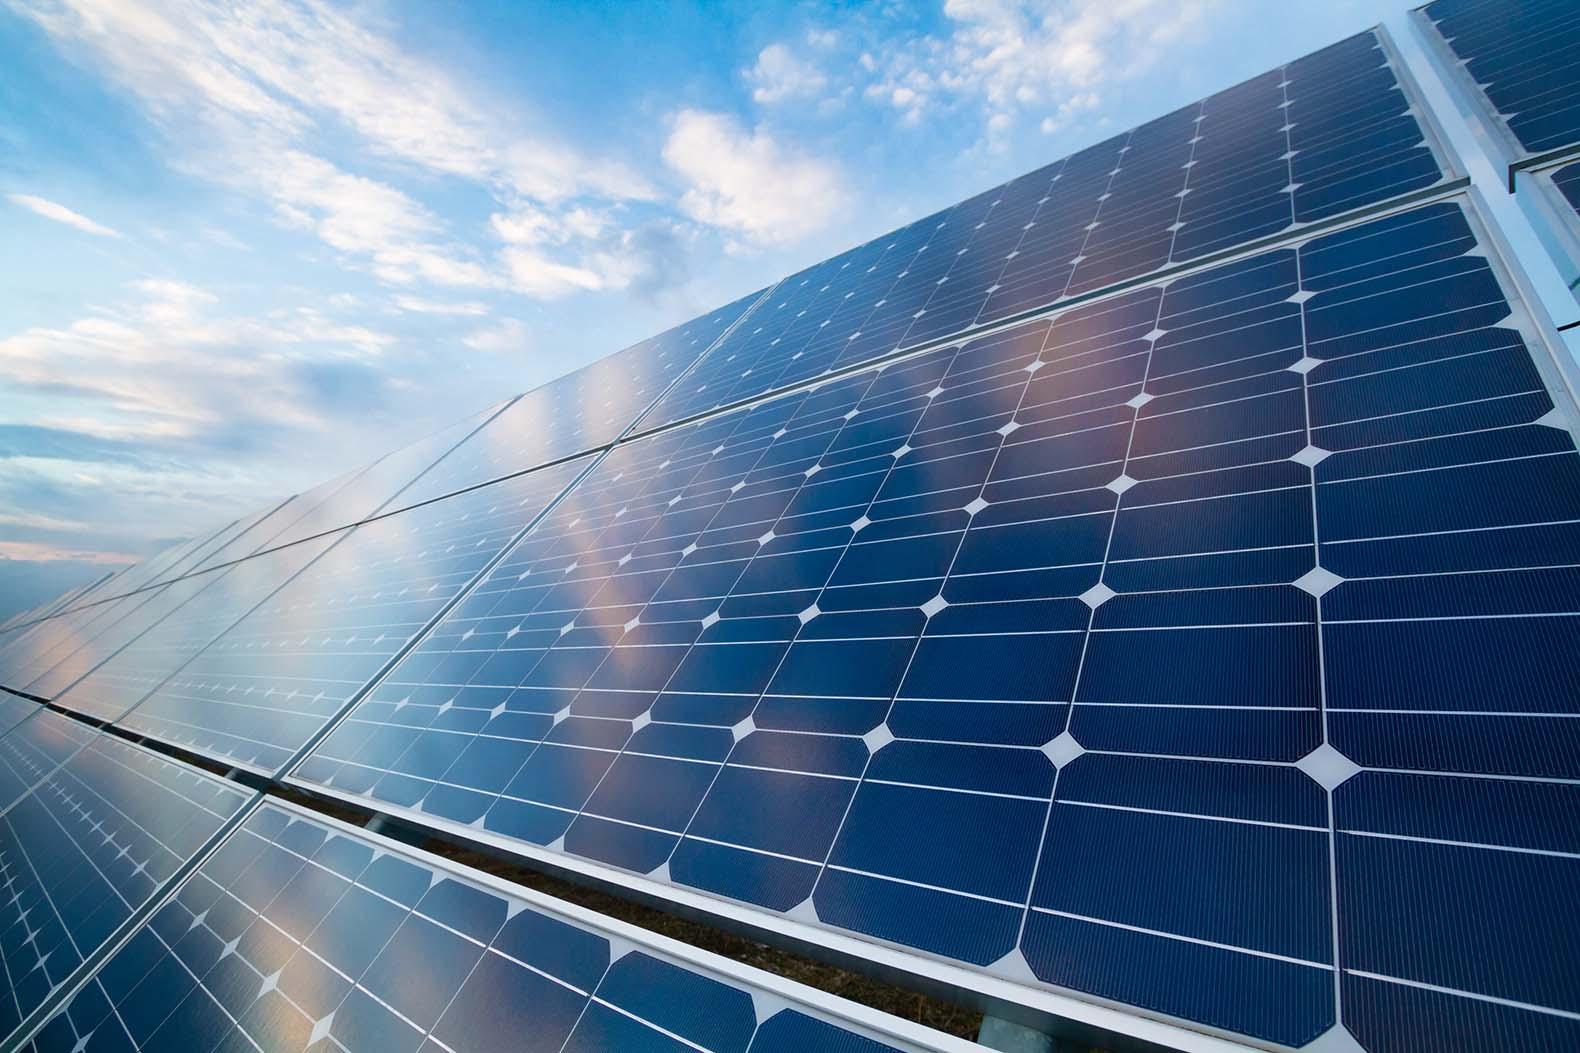 New technology makes solar panels 70% more efficient